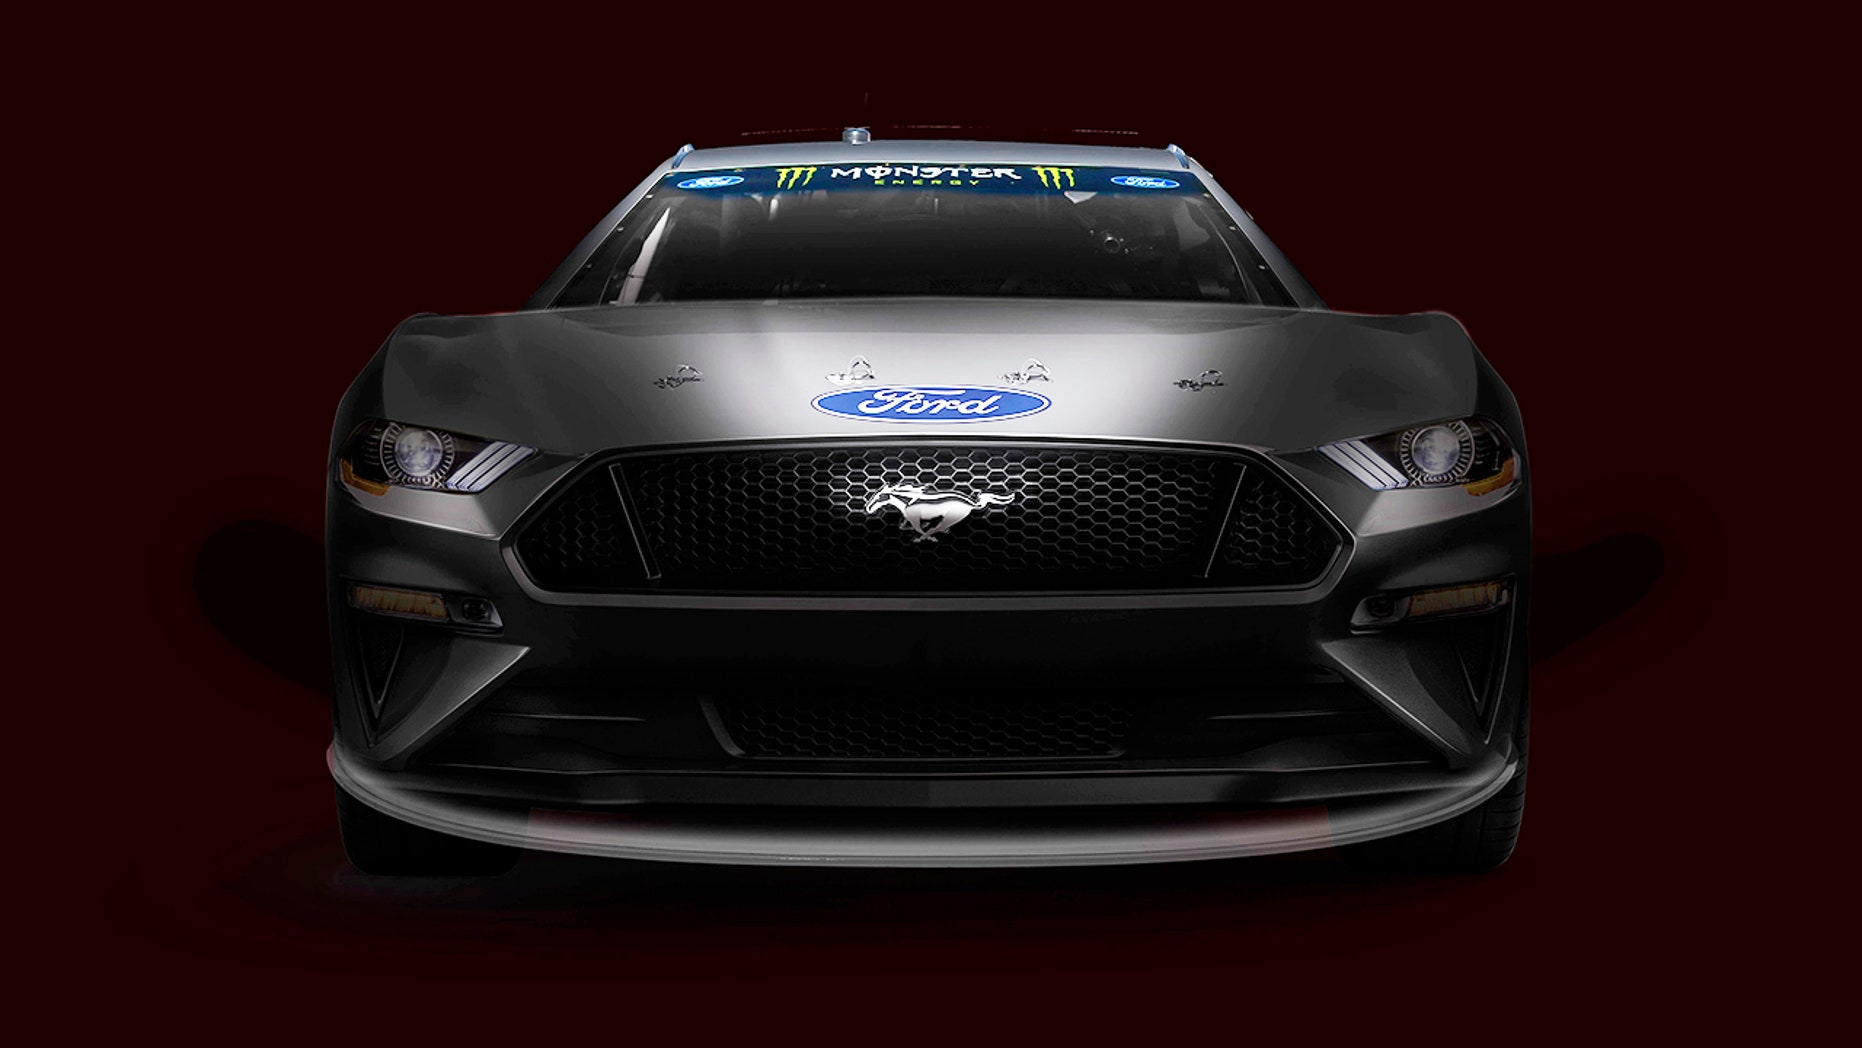 Building off its popularity, Ford also is announcing Mustang is coming to the NASCAR Monster Energy Cup Series – professional stock car racing's top league – for the first time, beginning at Daytona in February.